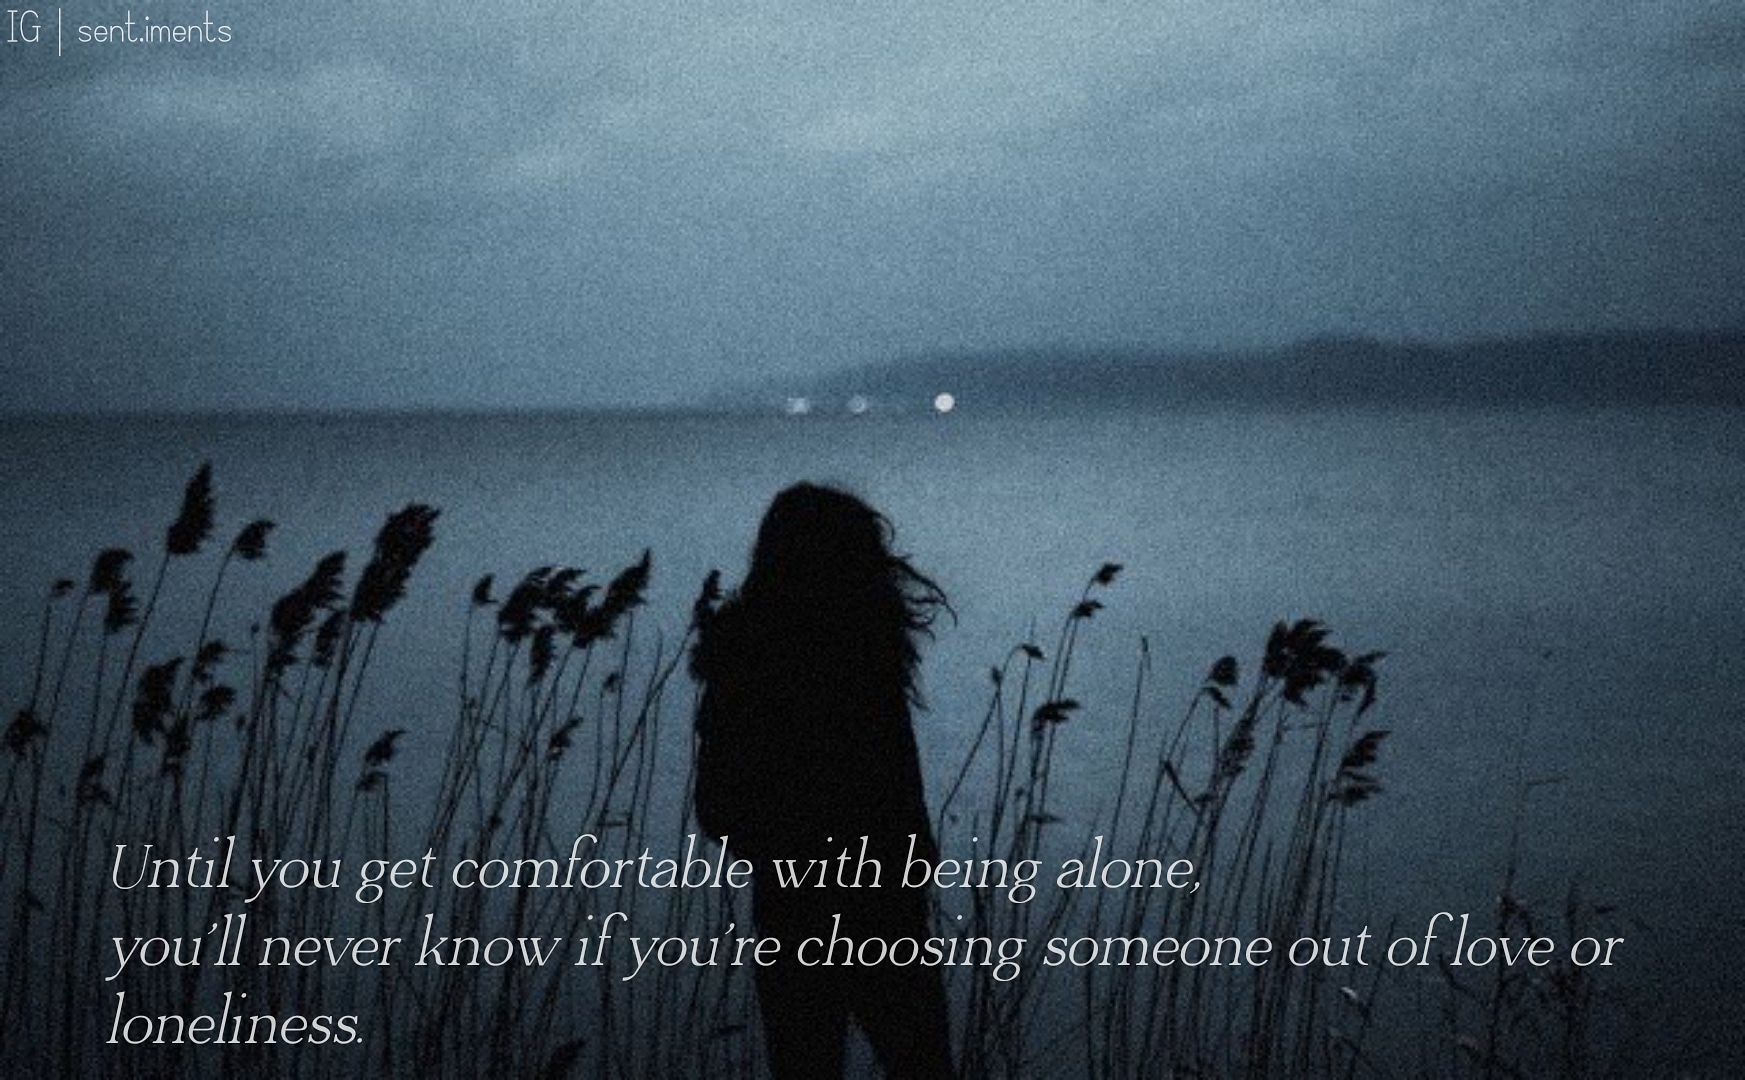 """Until you get comfortable with being alone, you'll never know if you're choosing someone out of love or loneliness."" by Mandy Hale [1745 X 1080]"